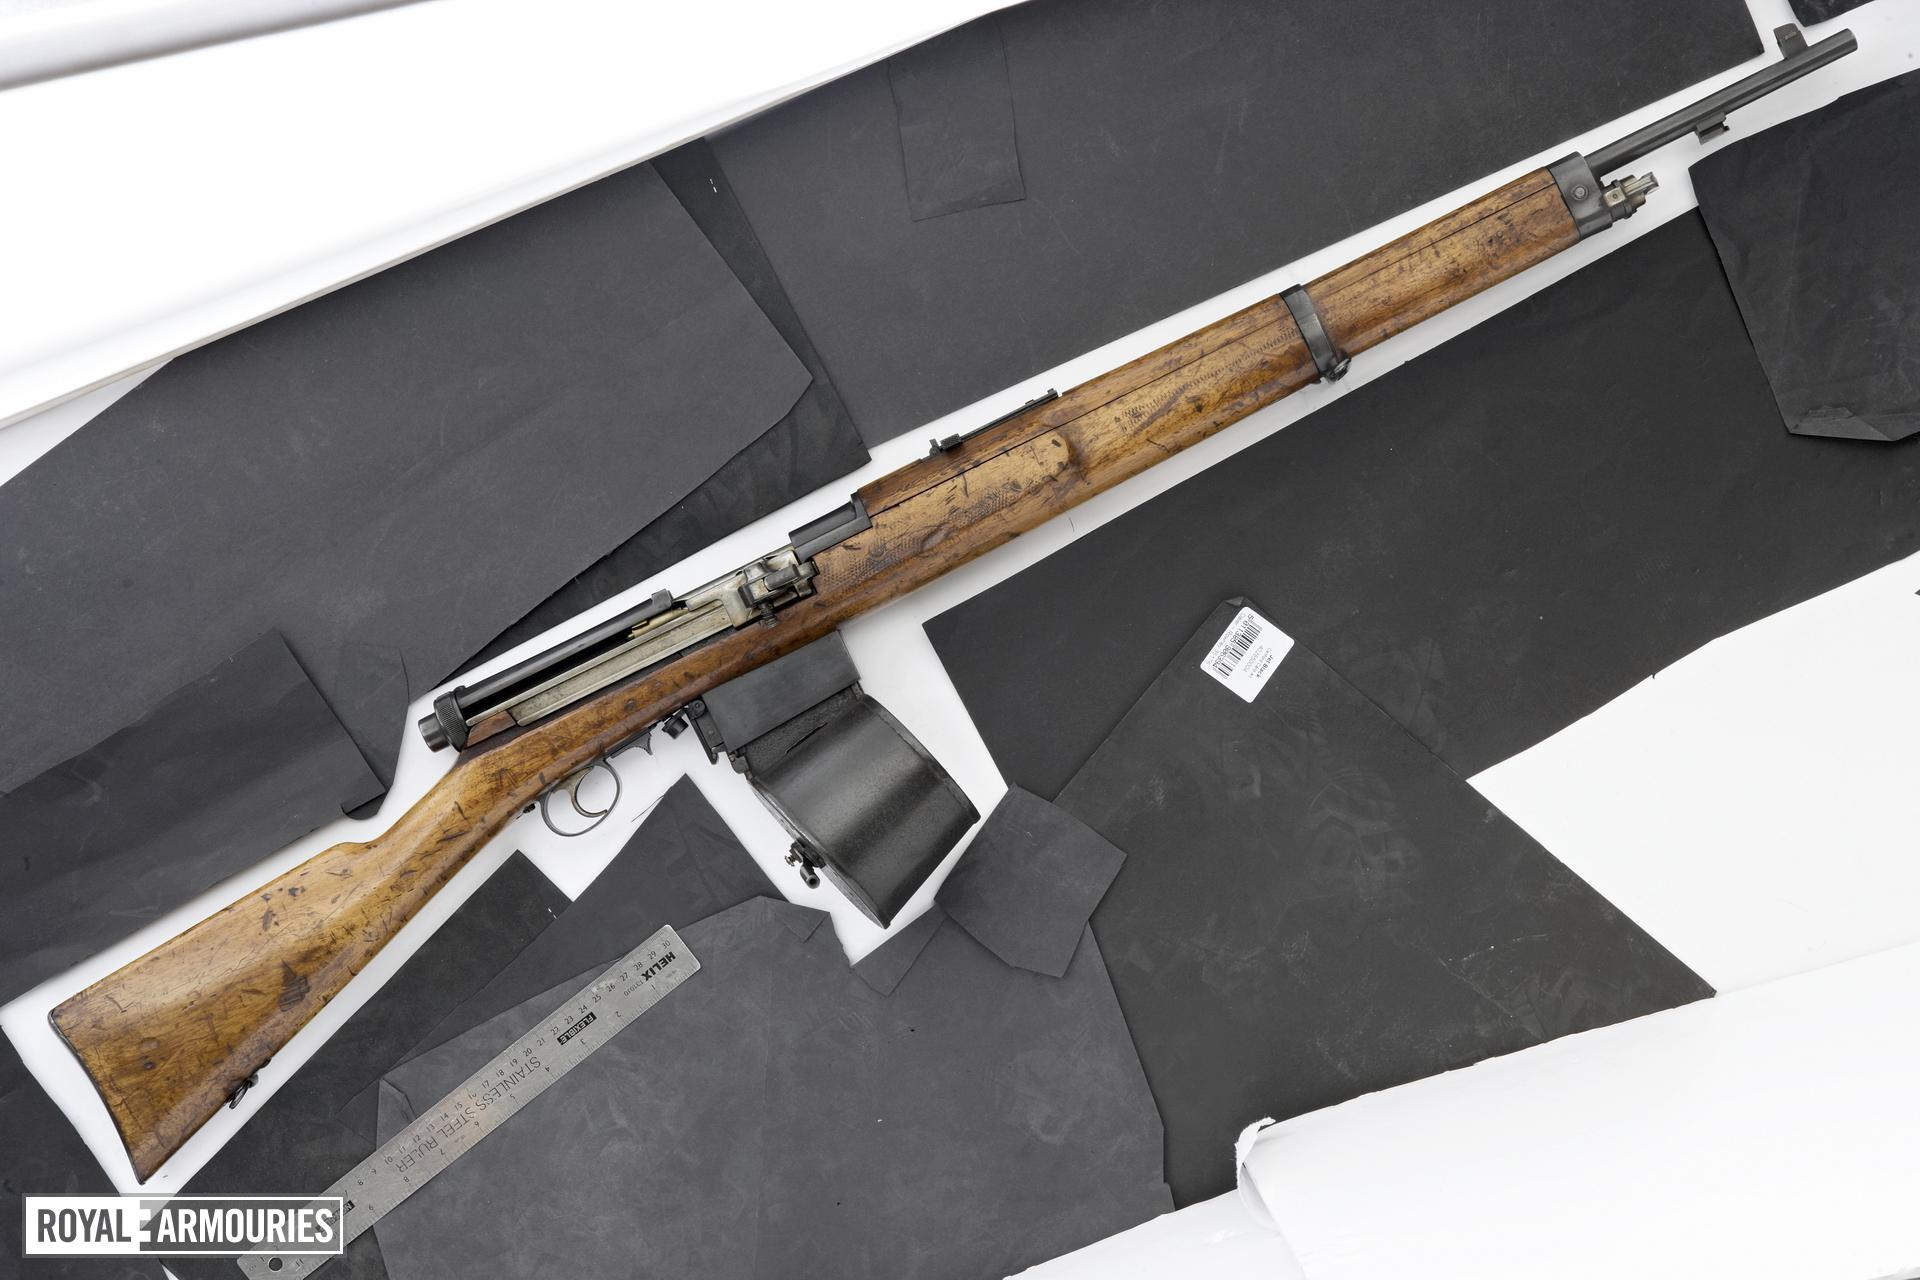 Centrefire self-loading rifle - FSK 15 Mondragon self-loading rifle